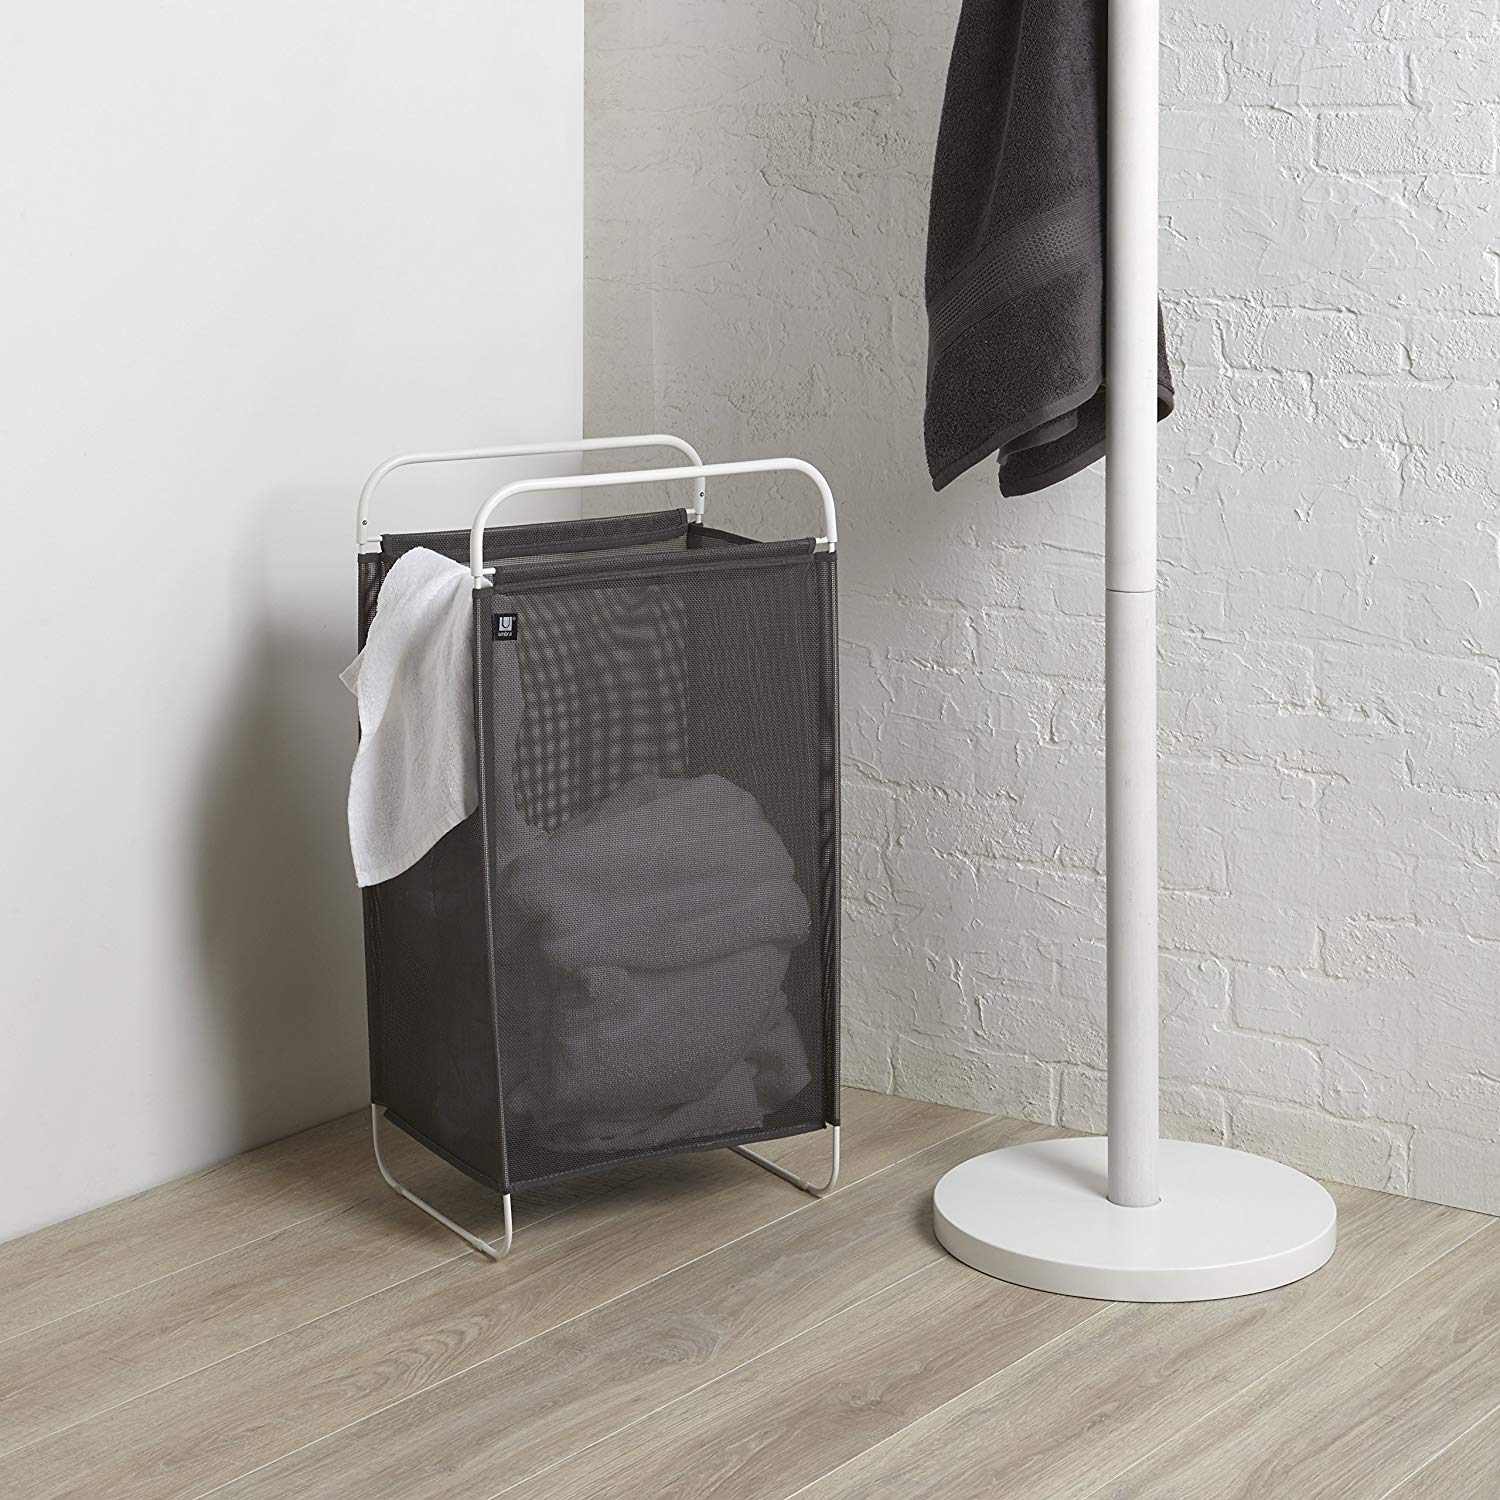 Umbra CINCH Laundry Hamper - Grey